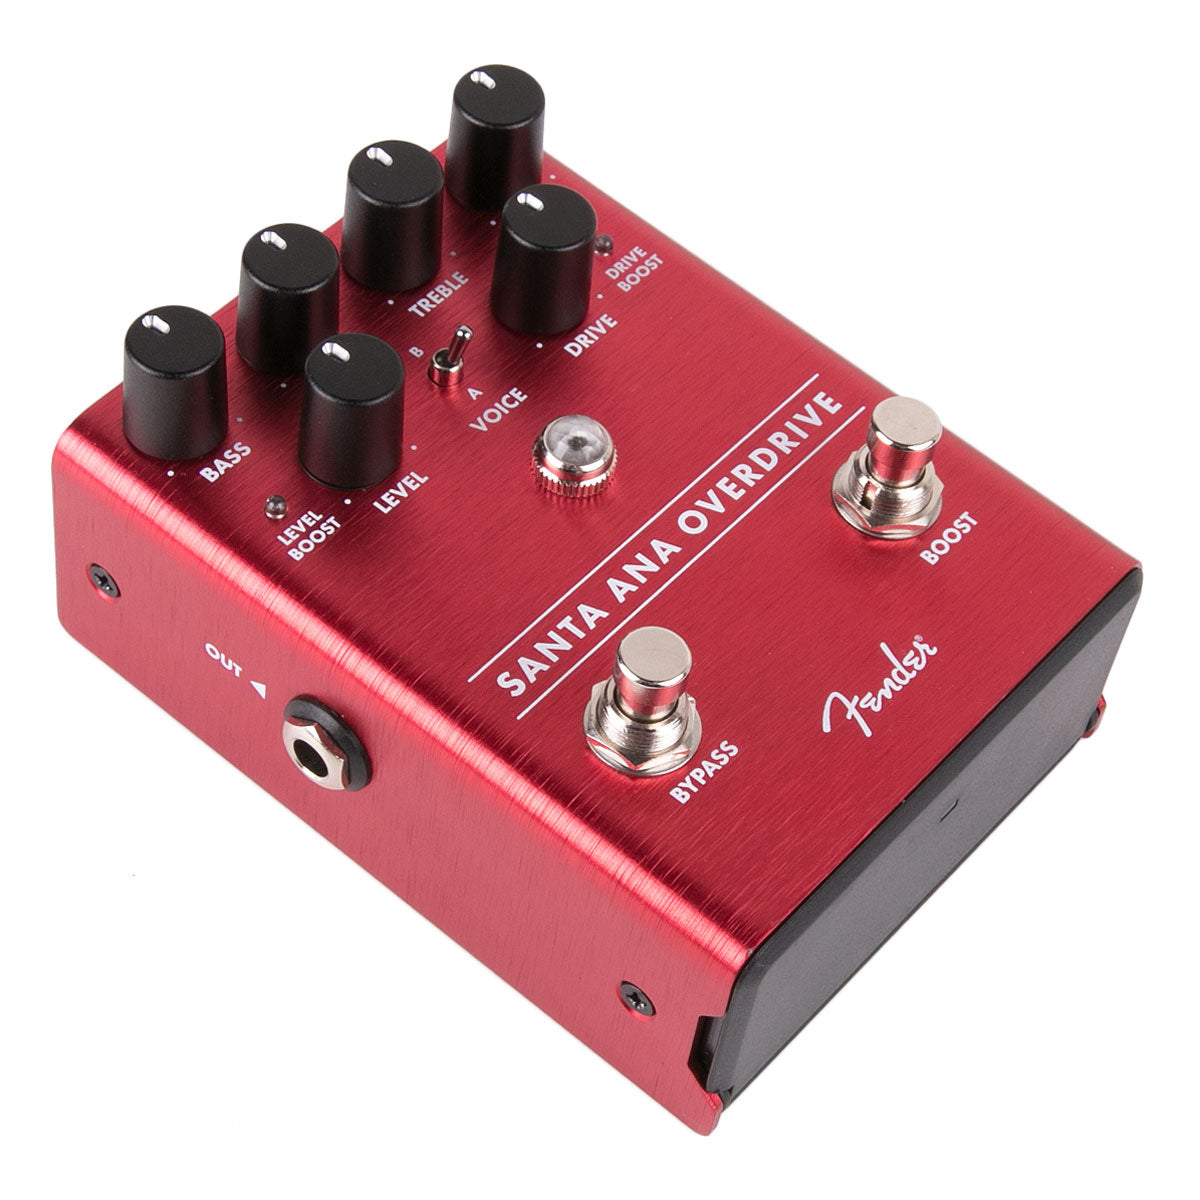 Fender Santa Ana Overdrive Pedal | Lucky Fret Music Co.